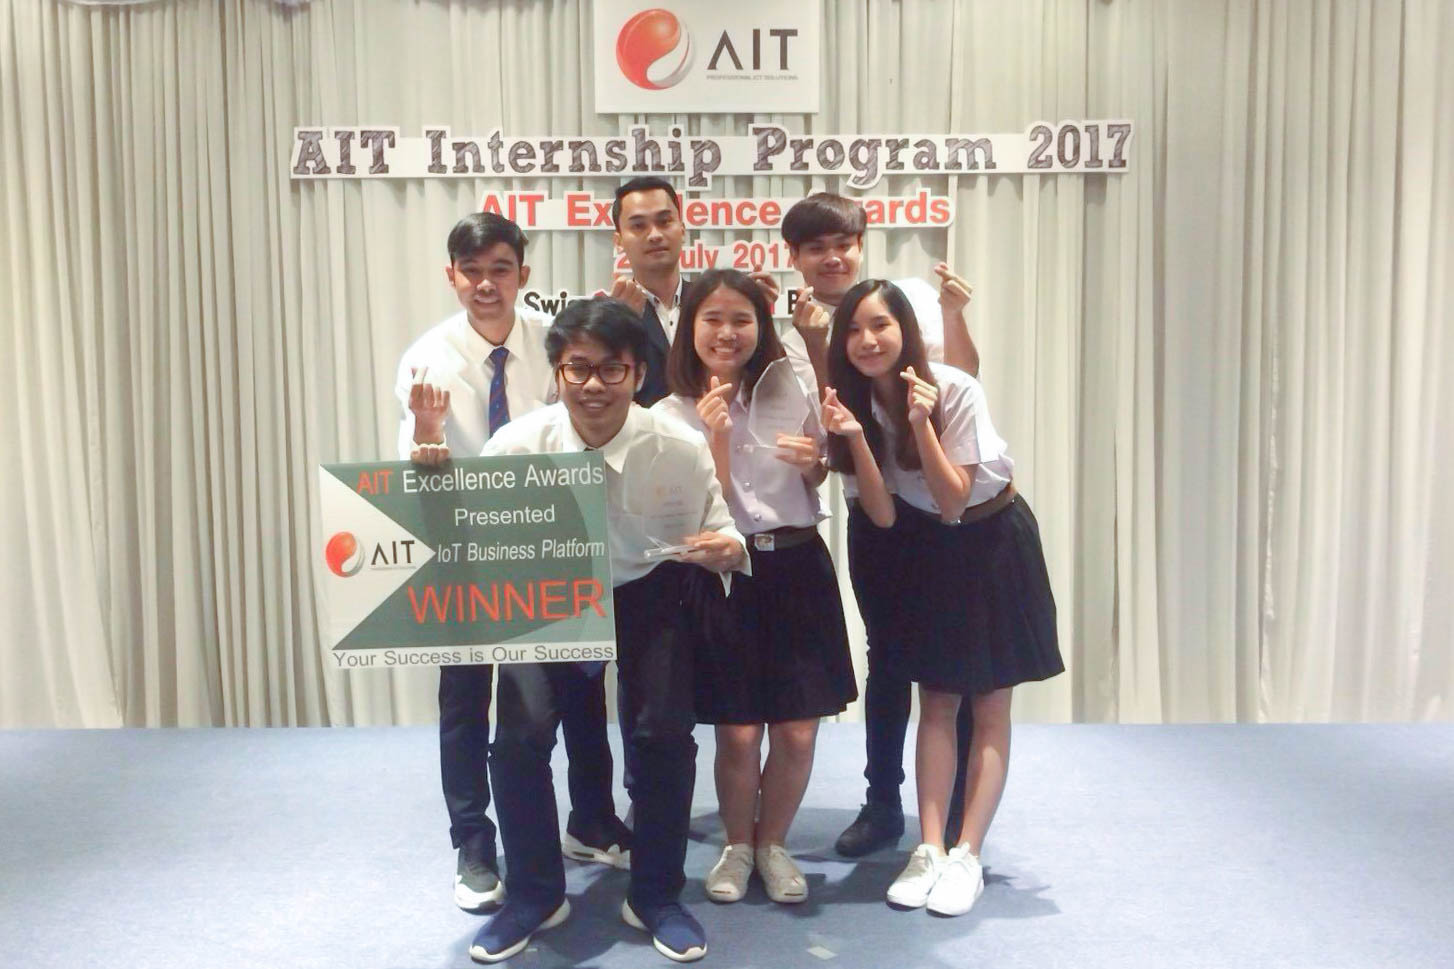 AIT Excellence Awards 2017